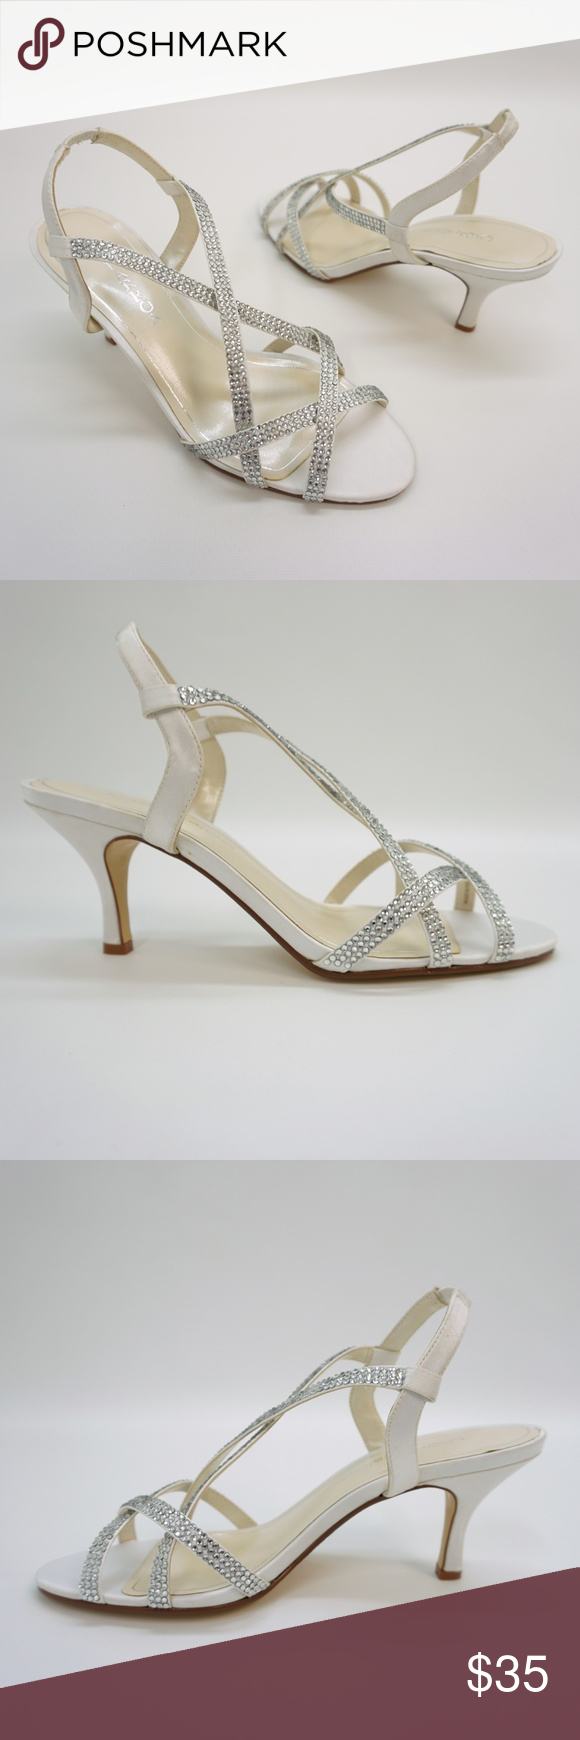 fa5fb707d4c Caparros Strappy Embellished Mid Heel Sandals 10   New Store Display  Handling Marks - see